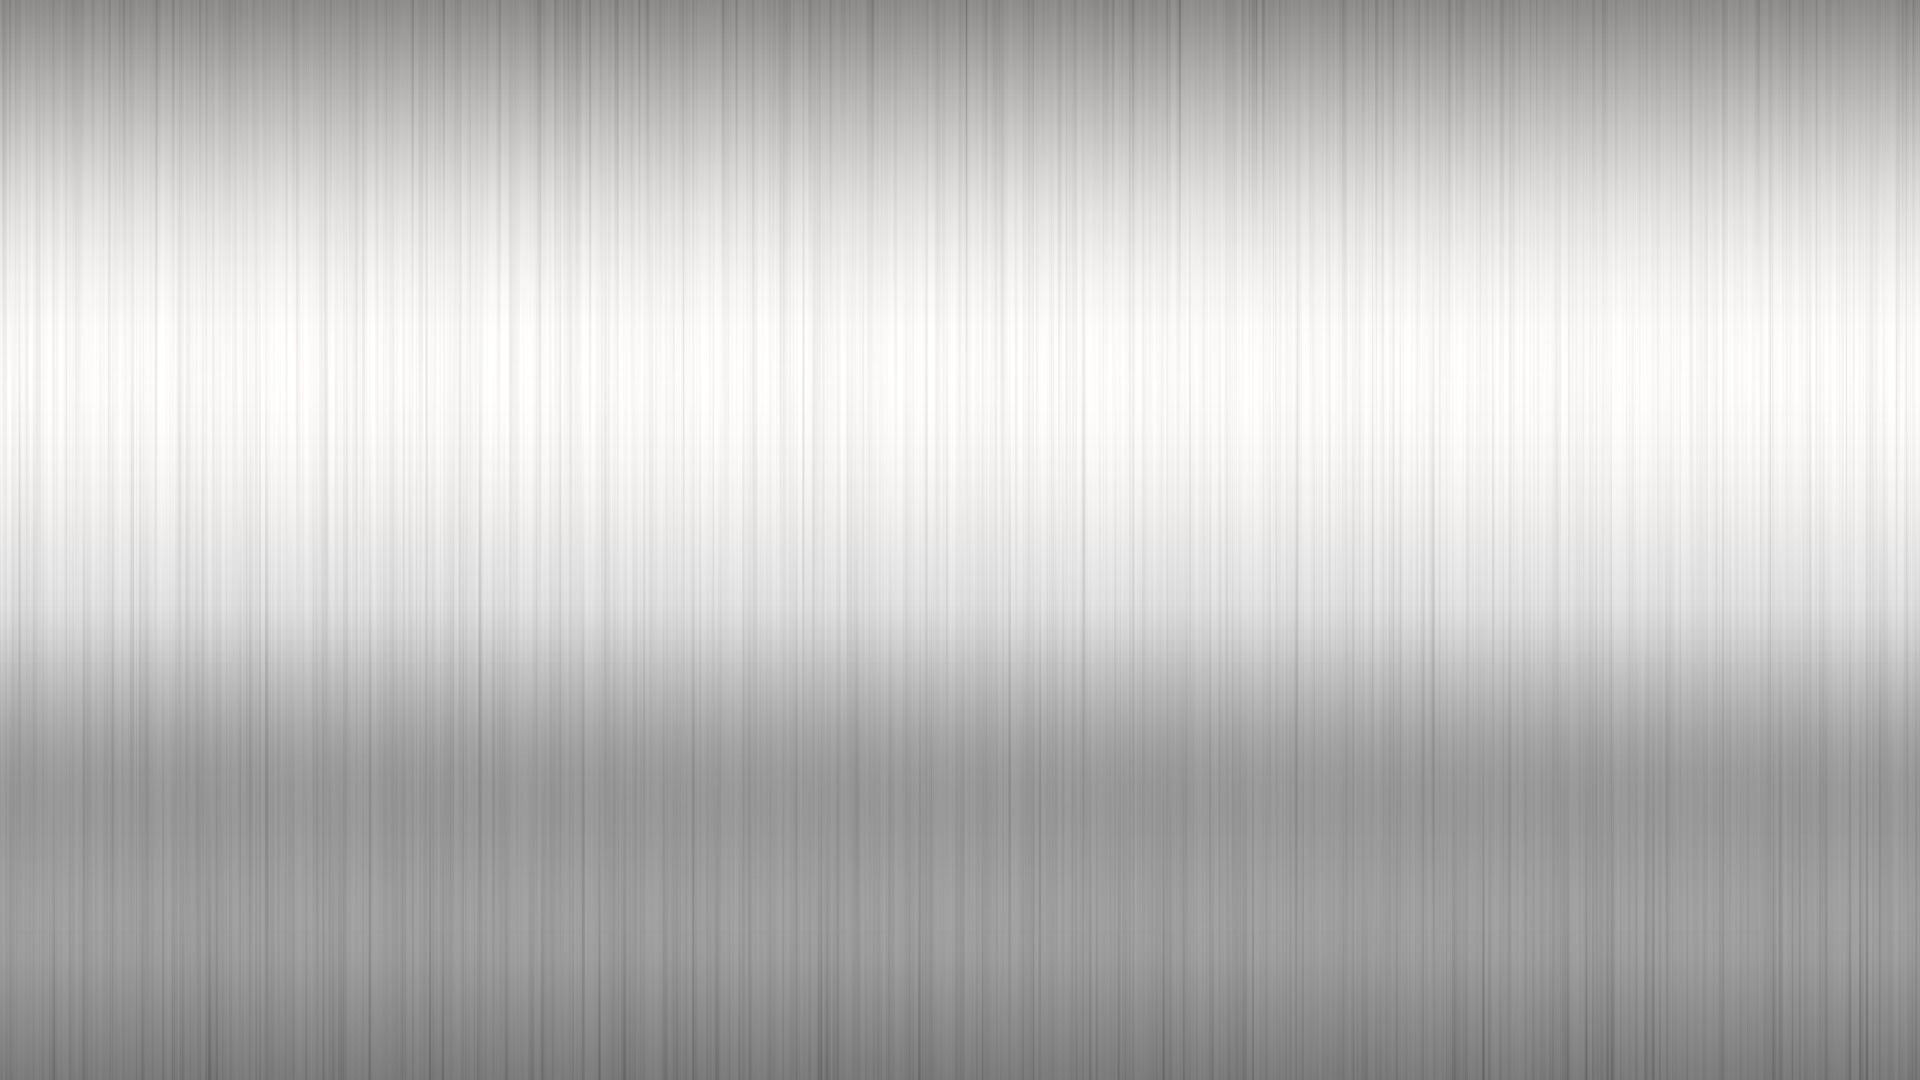 Chrome Texture Png 2 Image